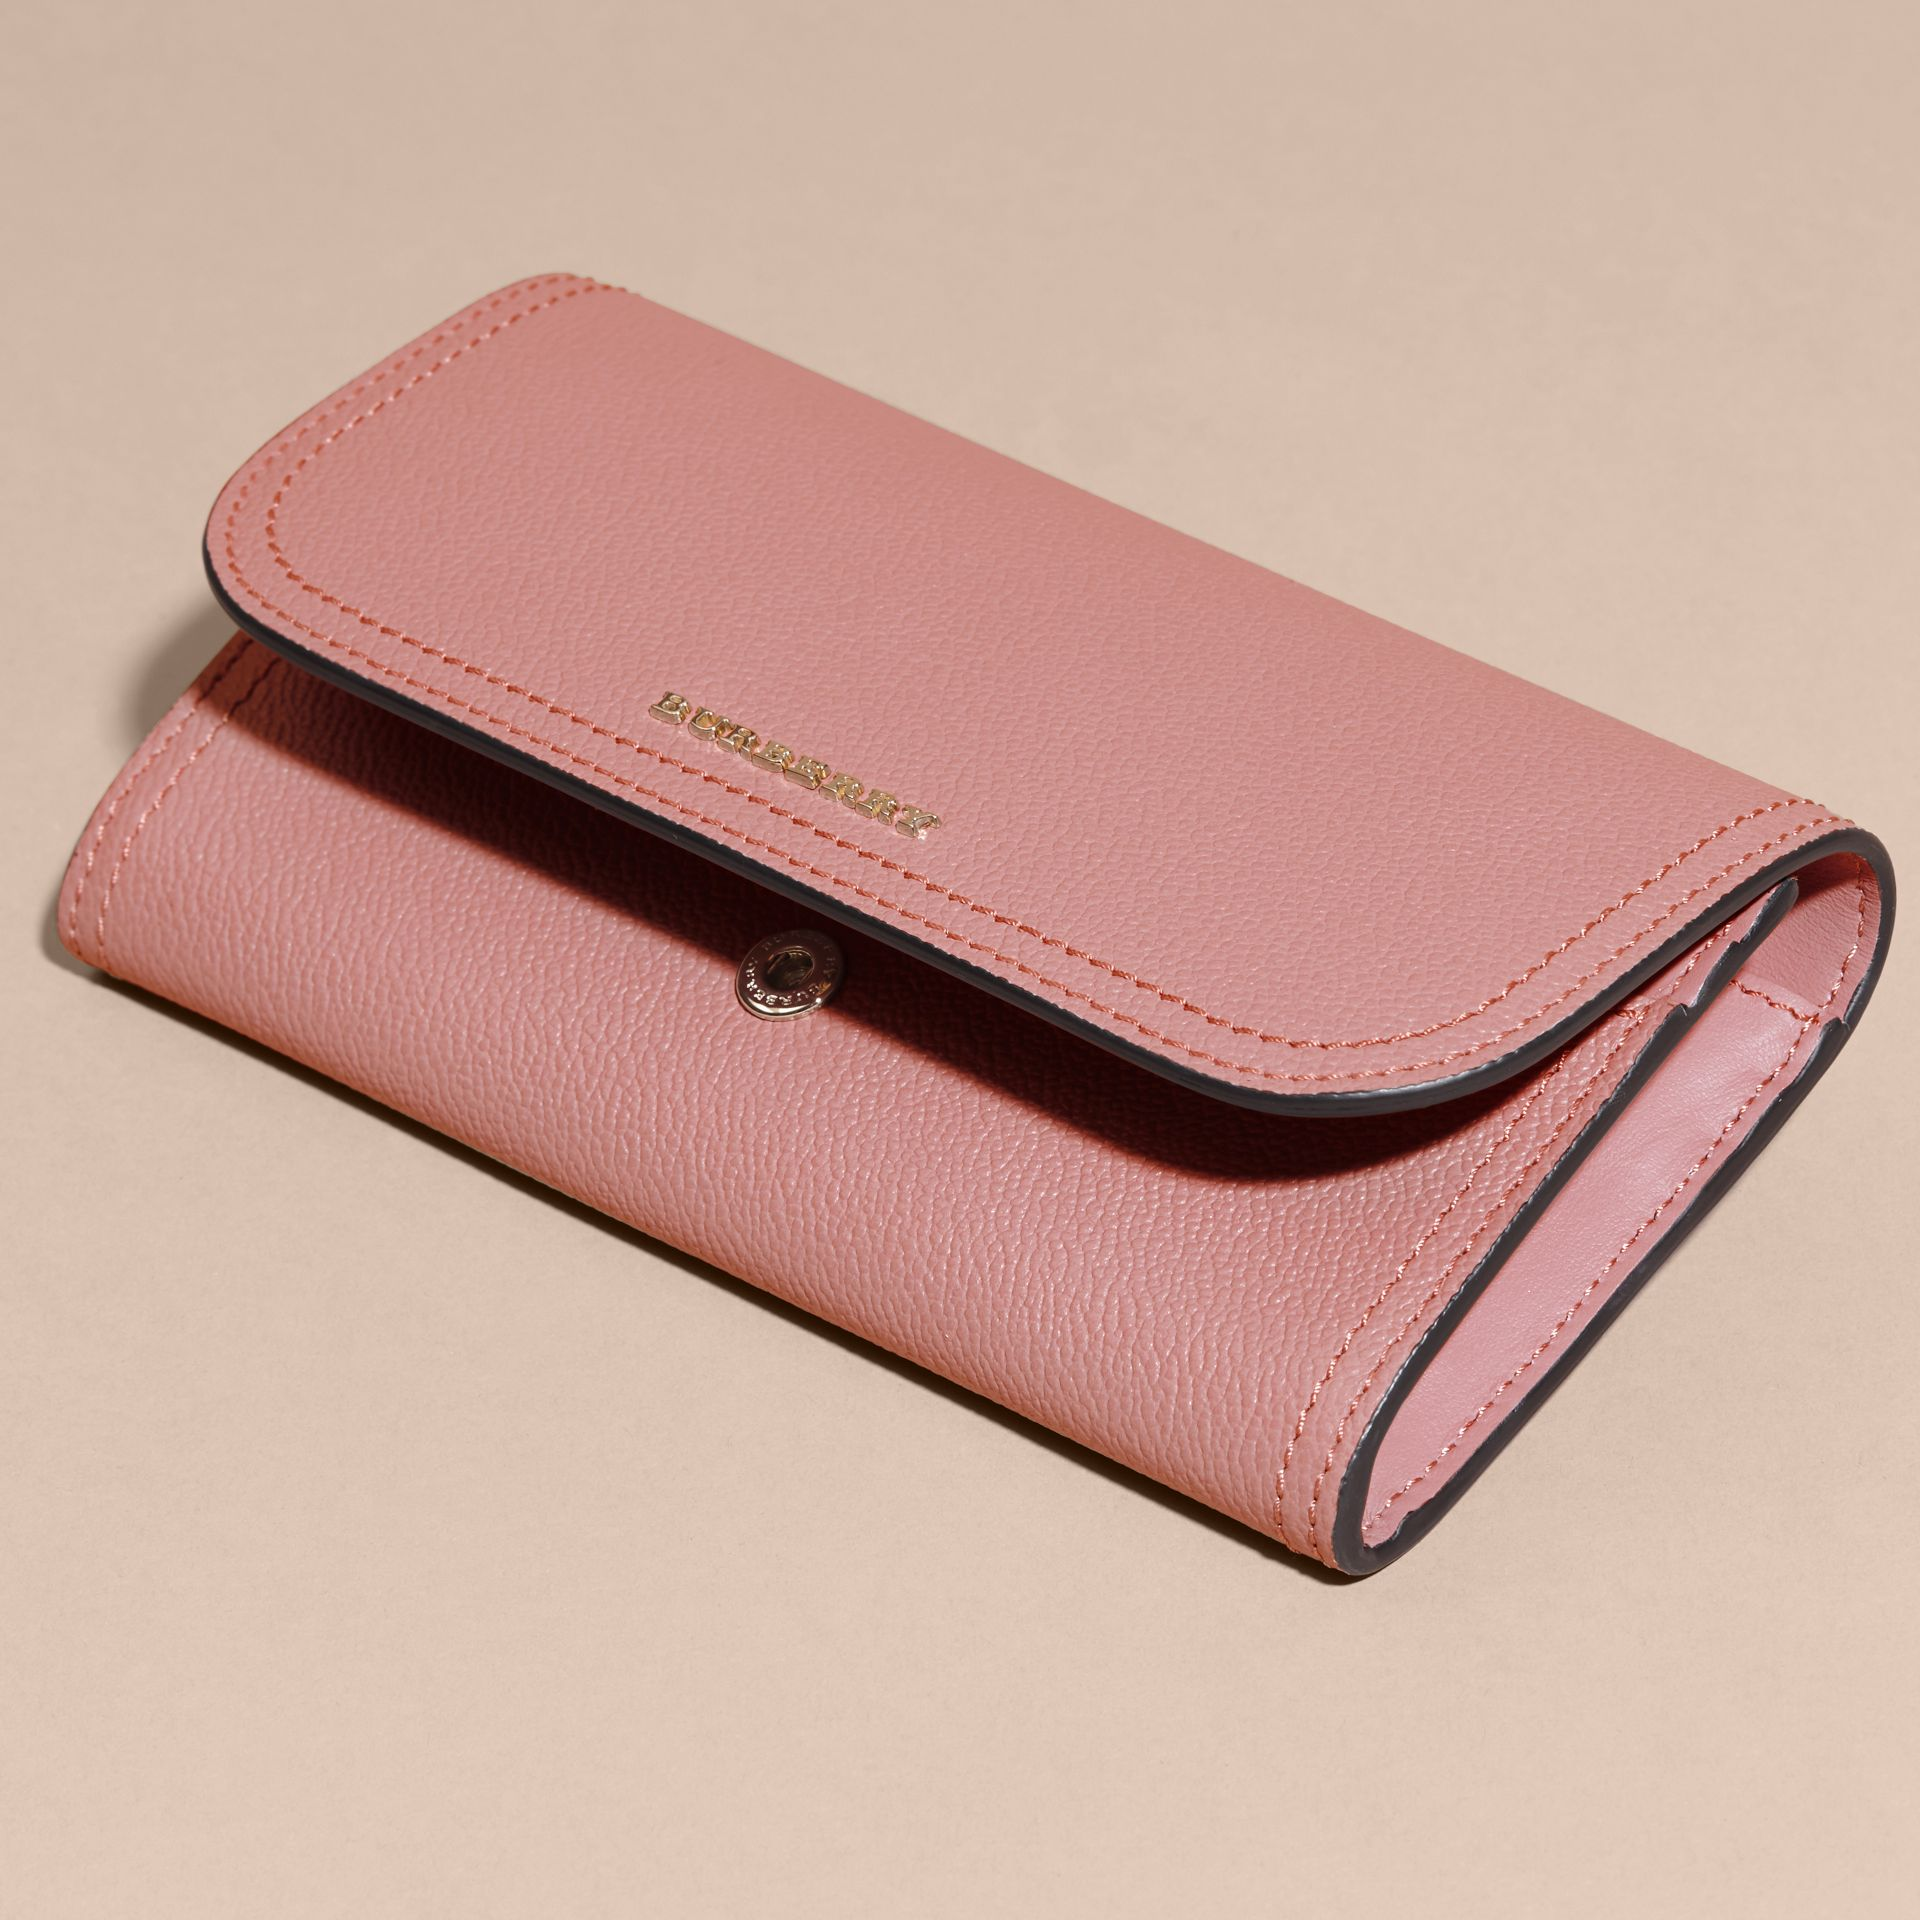 Grainy Leather Slim Continental Wallet in Dusty Pink - Women | Burberry Singapore - gallery image 4